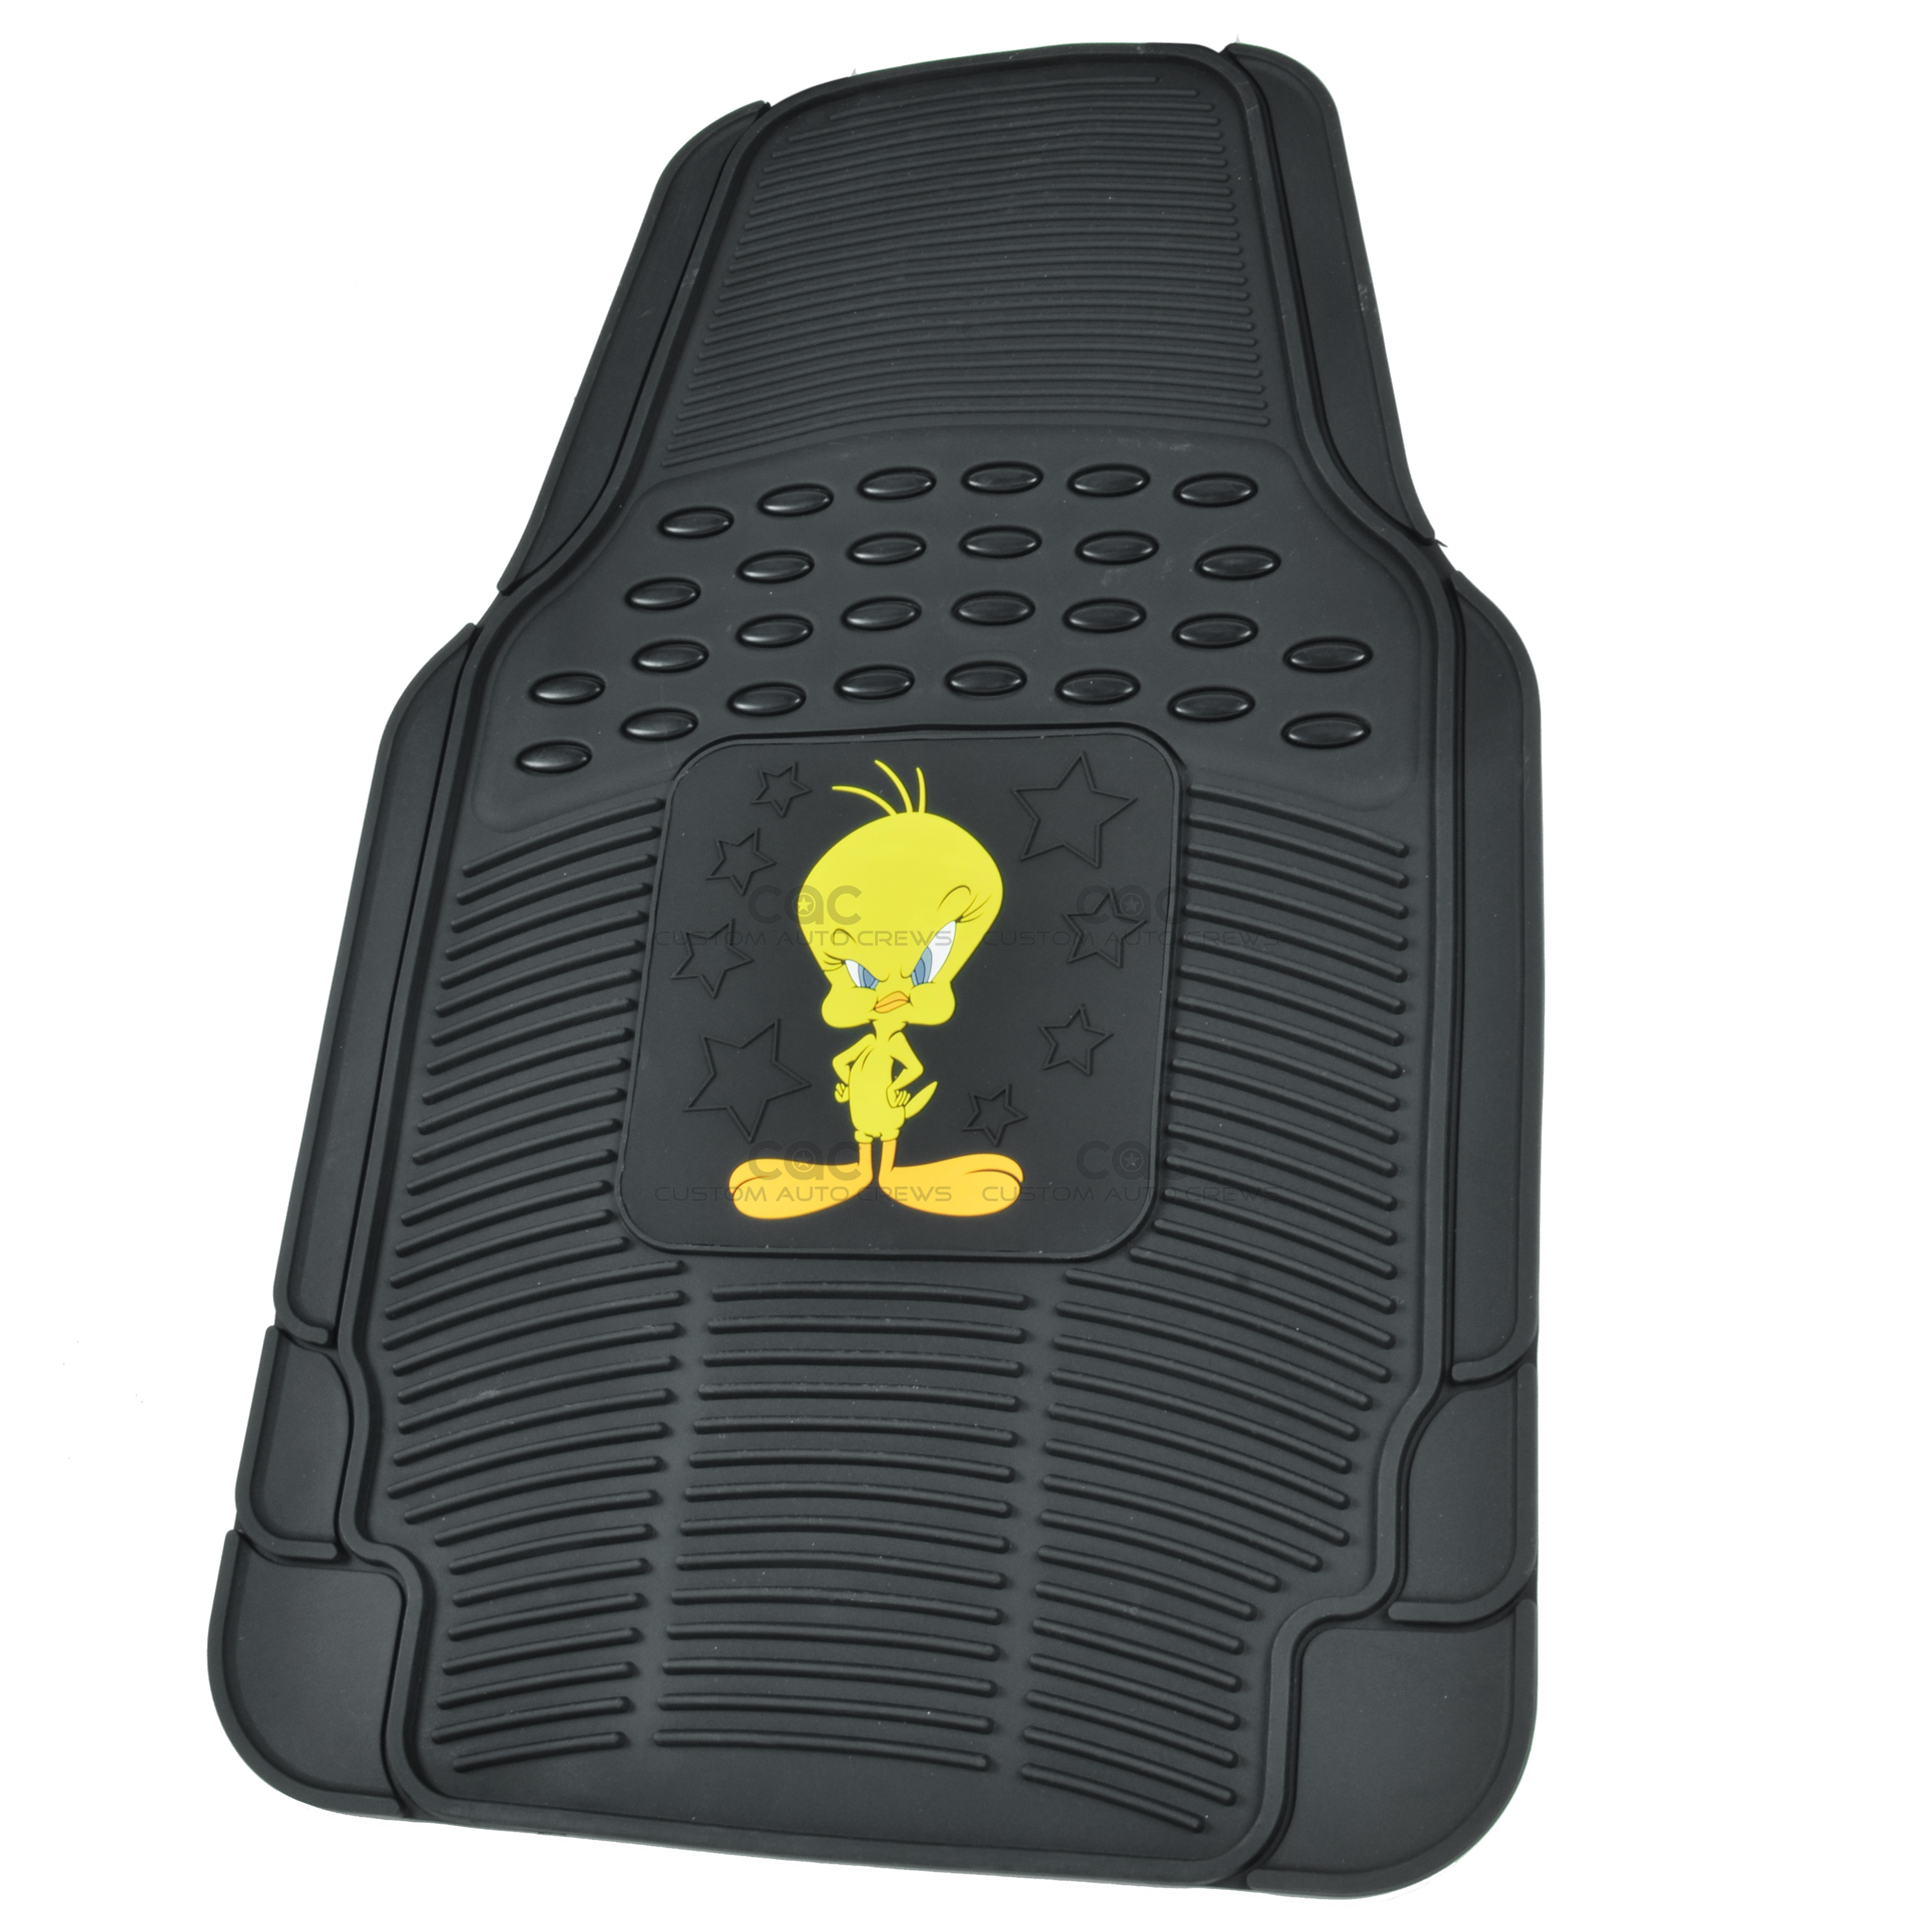 rubber floor mats gift set tweety bird character logo on black ebay. Black Bedroom Furniture Sets. Home Design Ideas